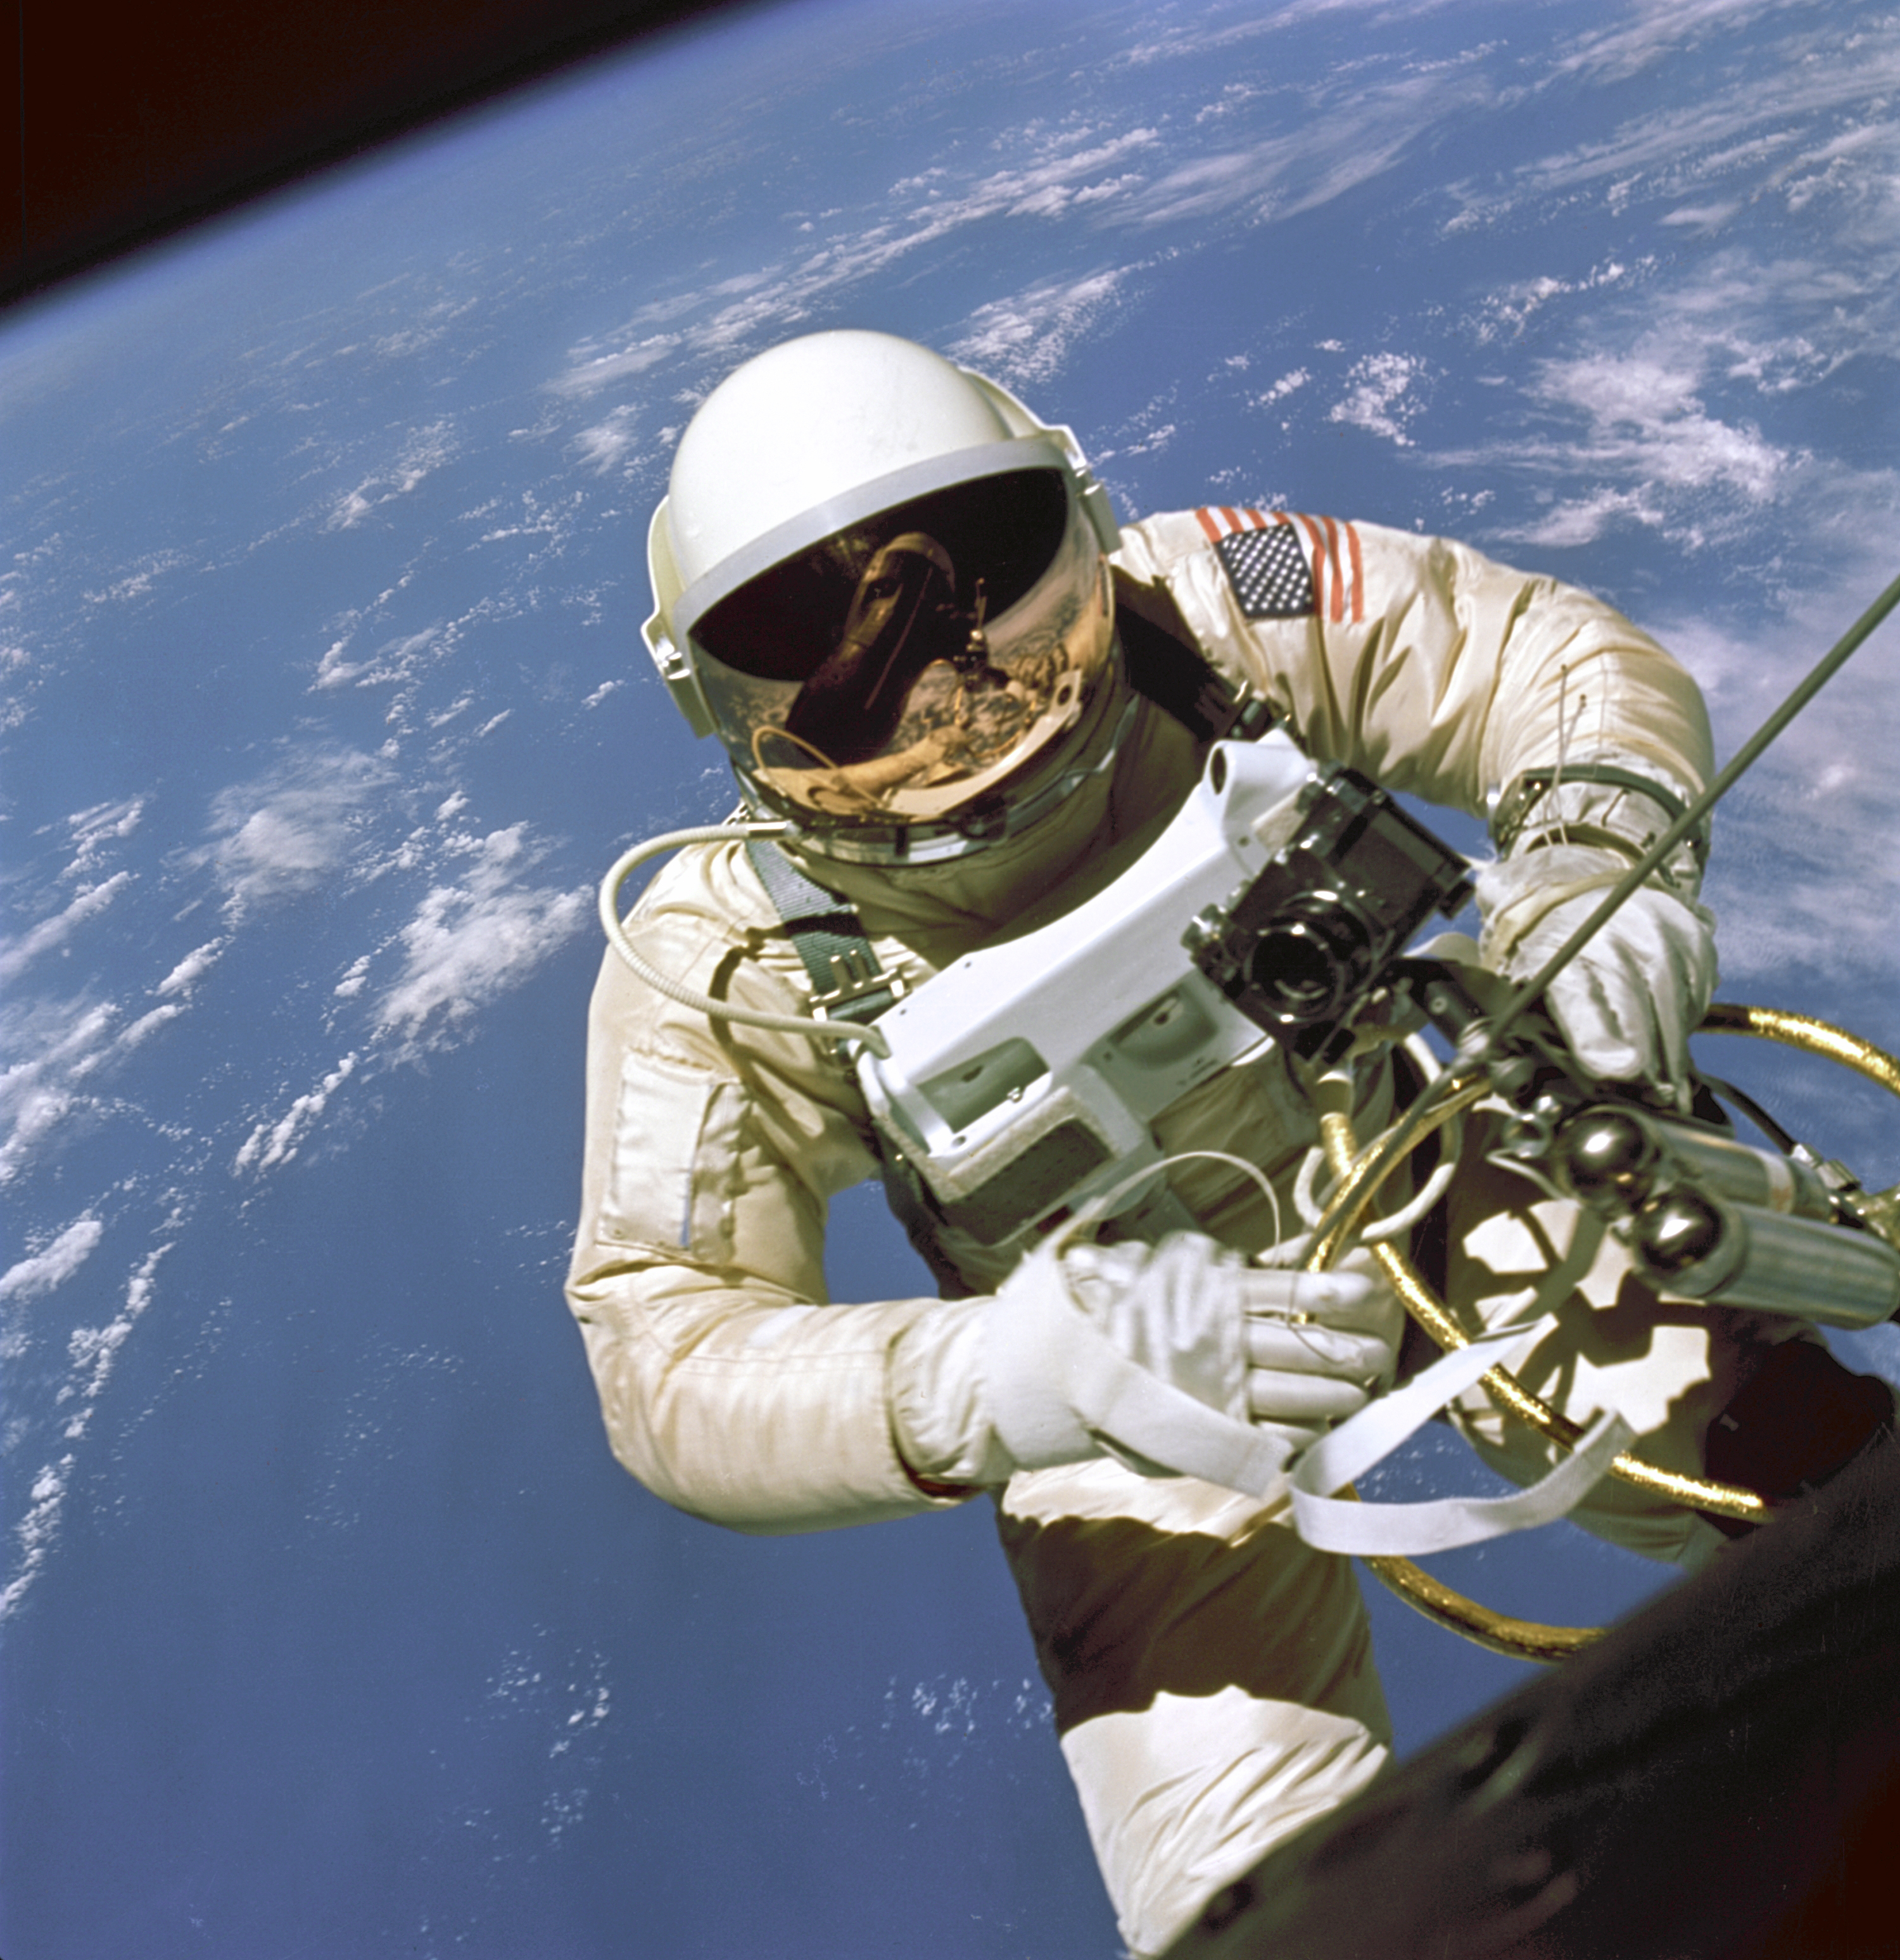 Astronaut Ed White during the First American Spacewalk